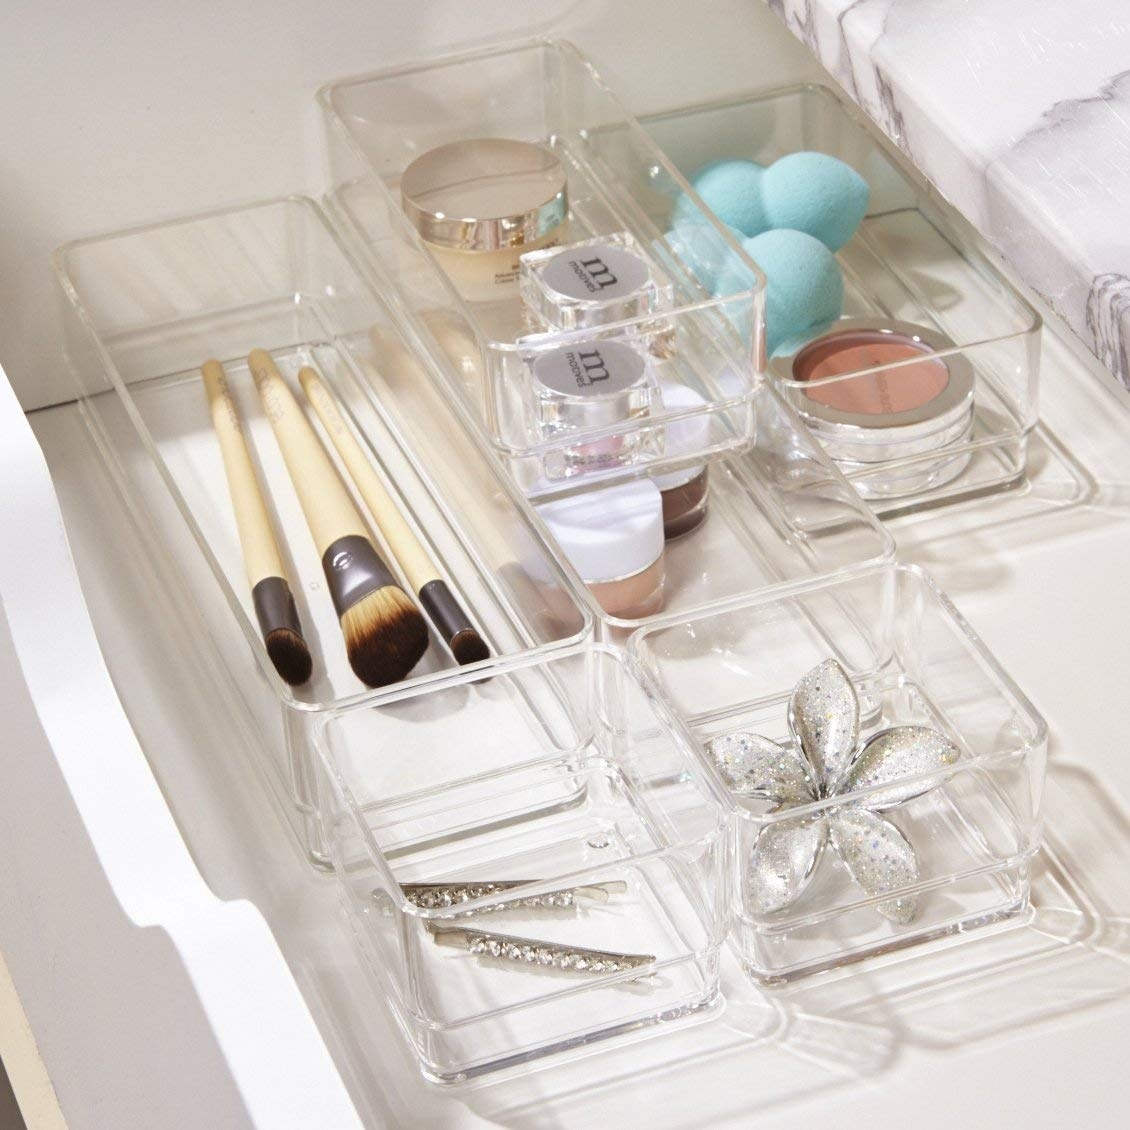 Clear plastic organizers with makeup and jewelry in them in a drawer